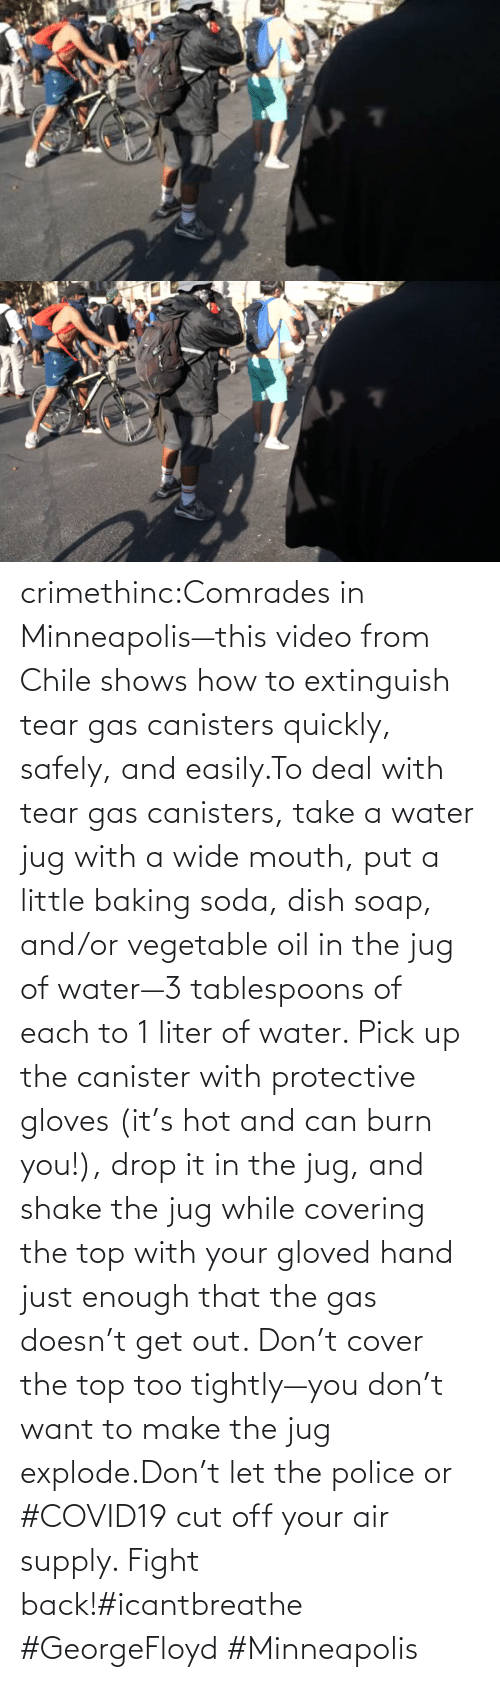 Click: crimethinc:Comrades in Minneapolis—this video from Chile shows how to extinguish tear gas canisters quickly, safely, and easily.To deal with tear gas canisters, take a water jug with a wide mouth, put a little baking soda, dish soap, and/or vegetable oil in the jug of water—3 tablespoons of each to 1 liter of water. Pick up the canister with protective gloves (it's hot and can burn you!), drop it in the jug, and shake the jug while covering the top with your gloved hand just enough that the gas doesn't get out. Don't cover the top too tightly—you don't want to make the jug explode.Don't let the police or #COVID19 cut off your air supply. Fight back!#icantbreathe #GeorgeFloyd #Minneapolis